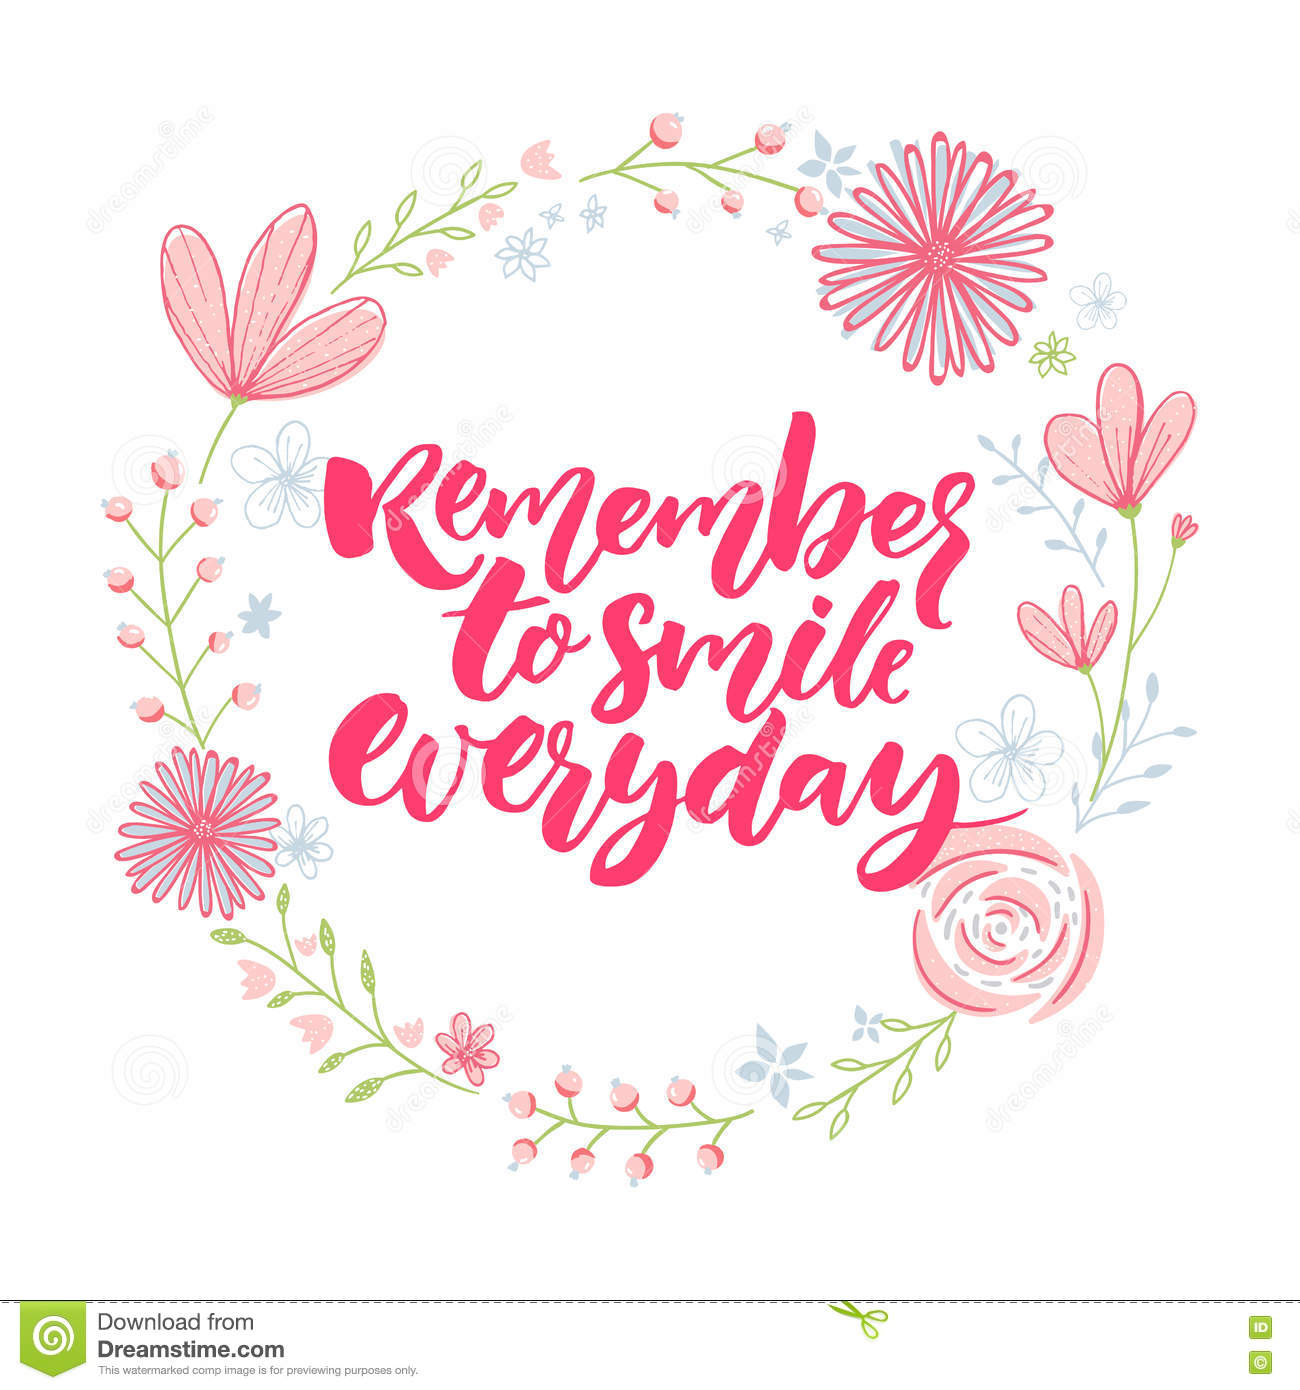 Download Remember To Smile Everyday Inspirational Saying In Floral Wreath Calligraphy With Flowers Decorations